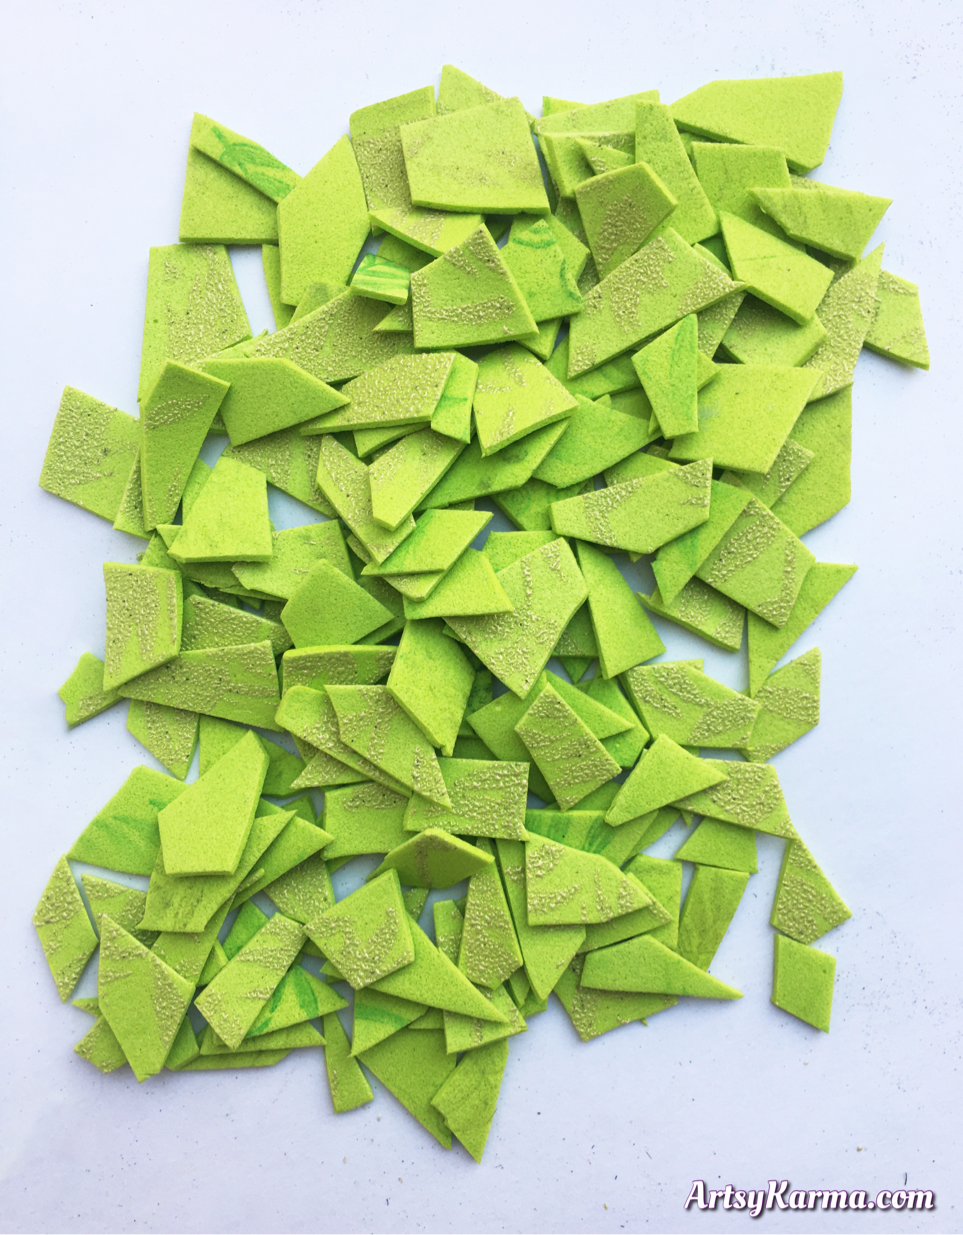 Foam pieces to use as little tiles